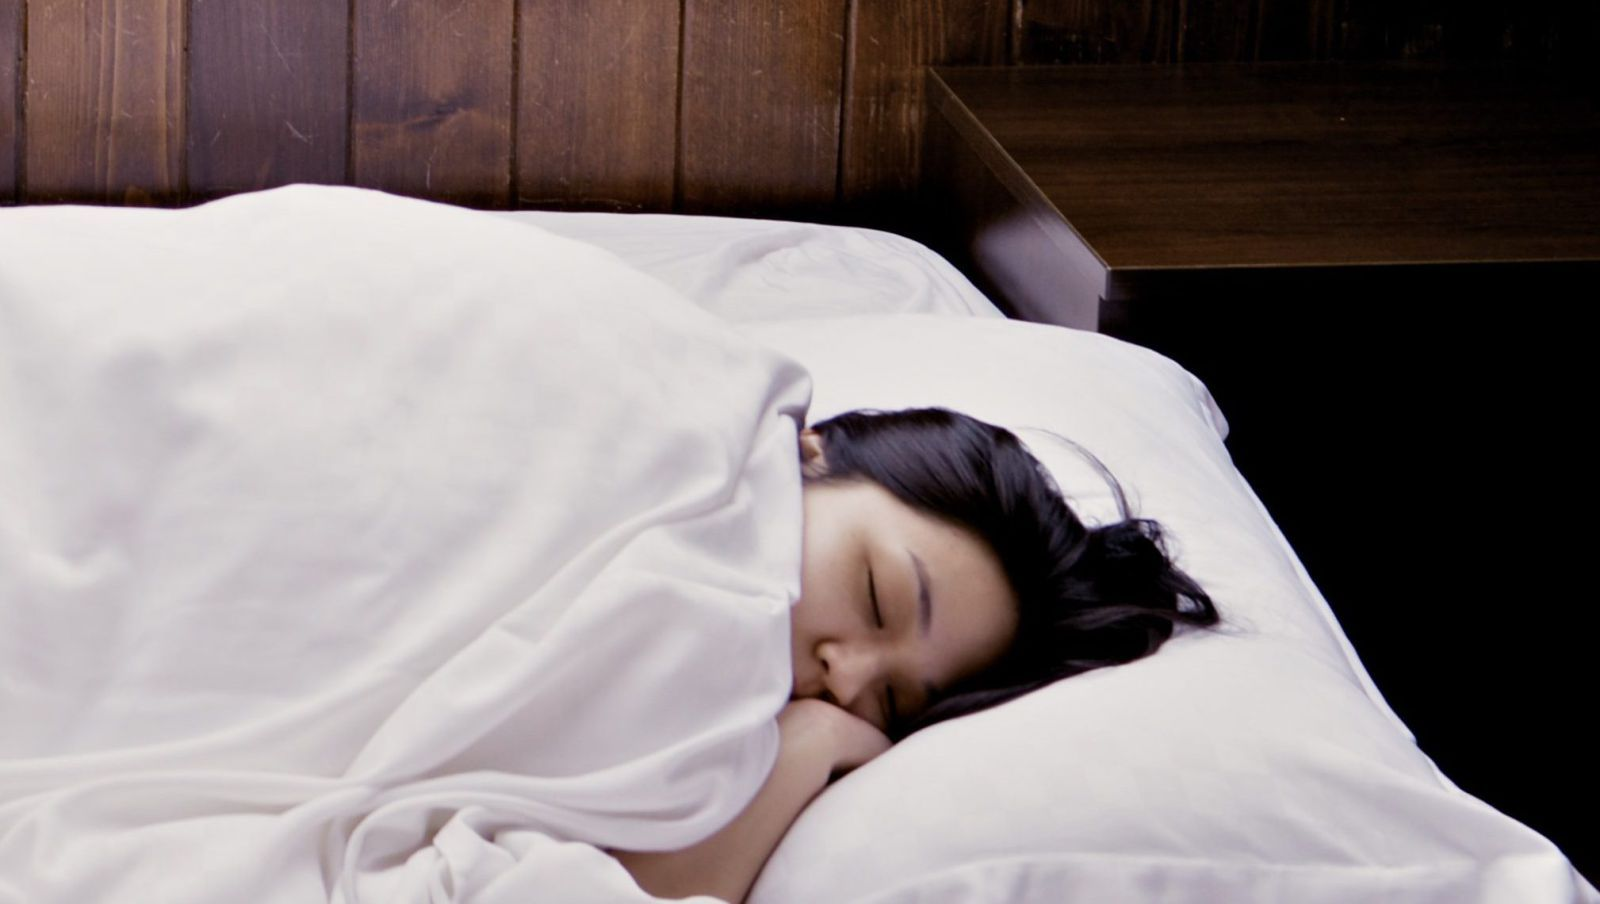 A cognitive scientist has devised a drugfree sleep trick for your